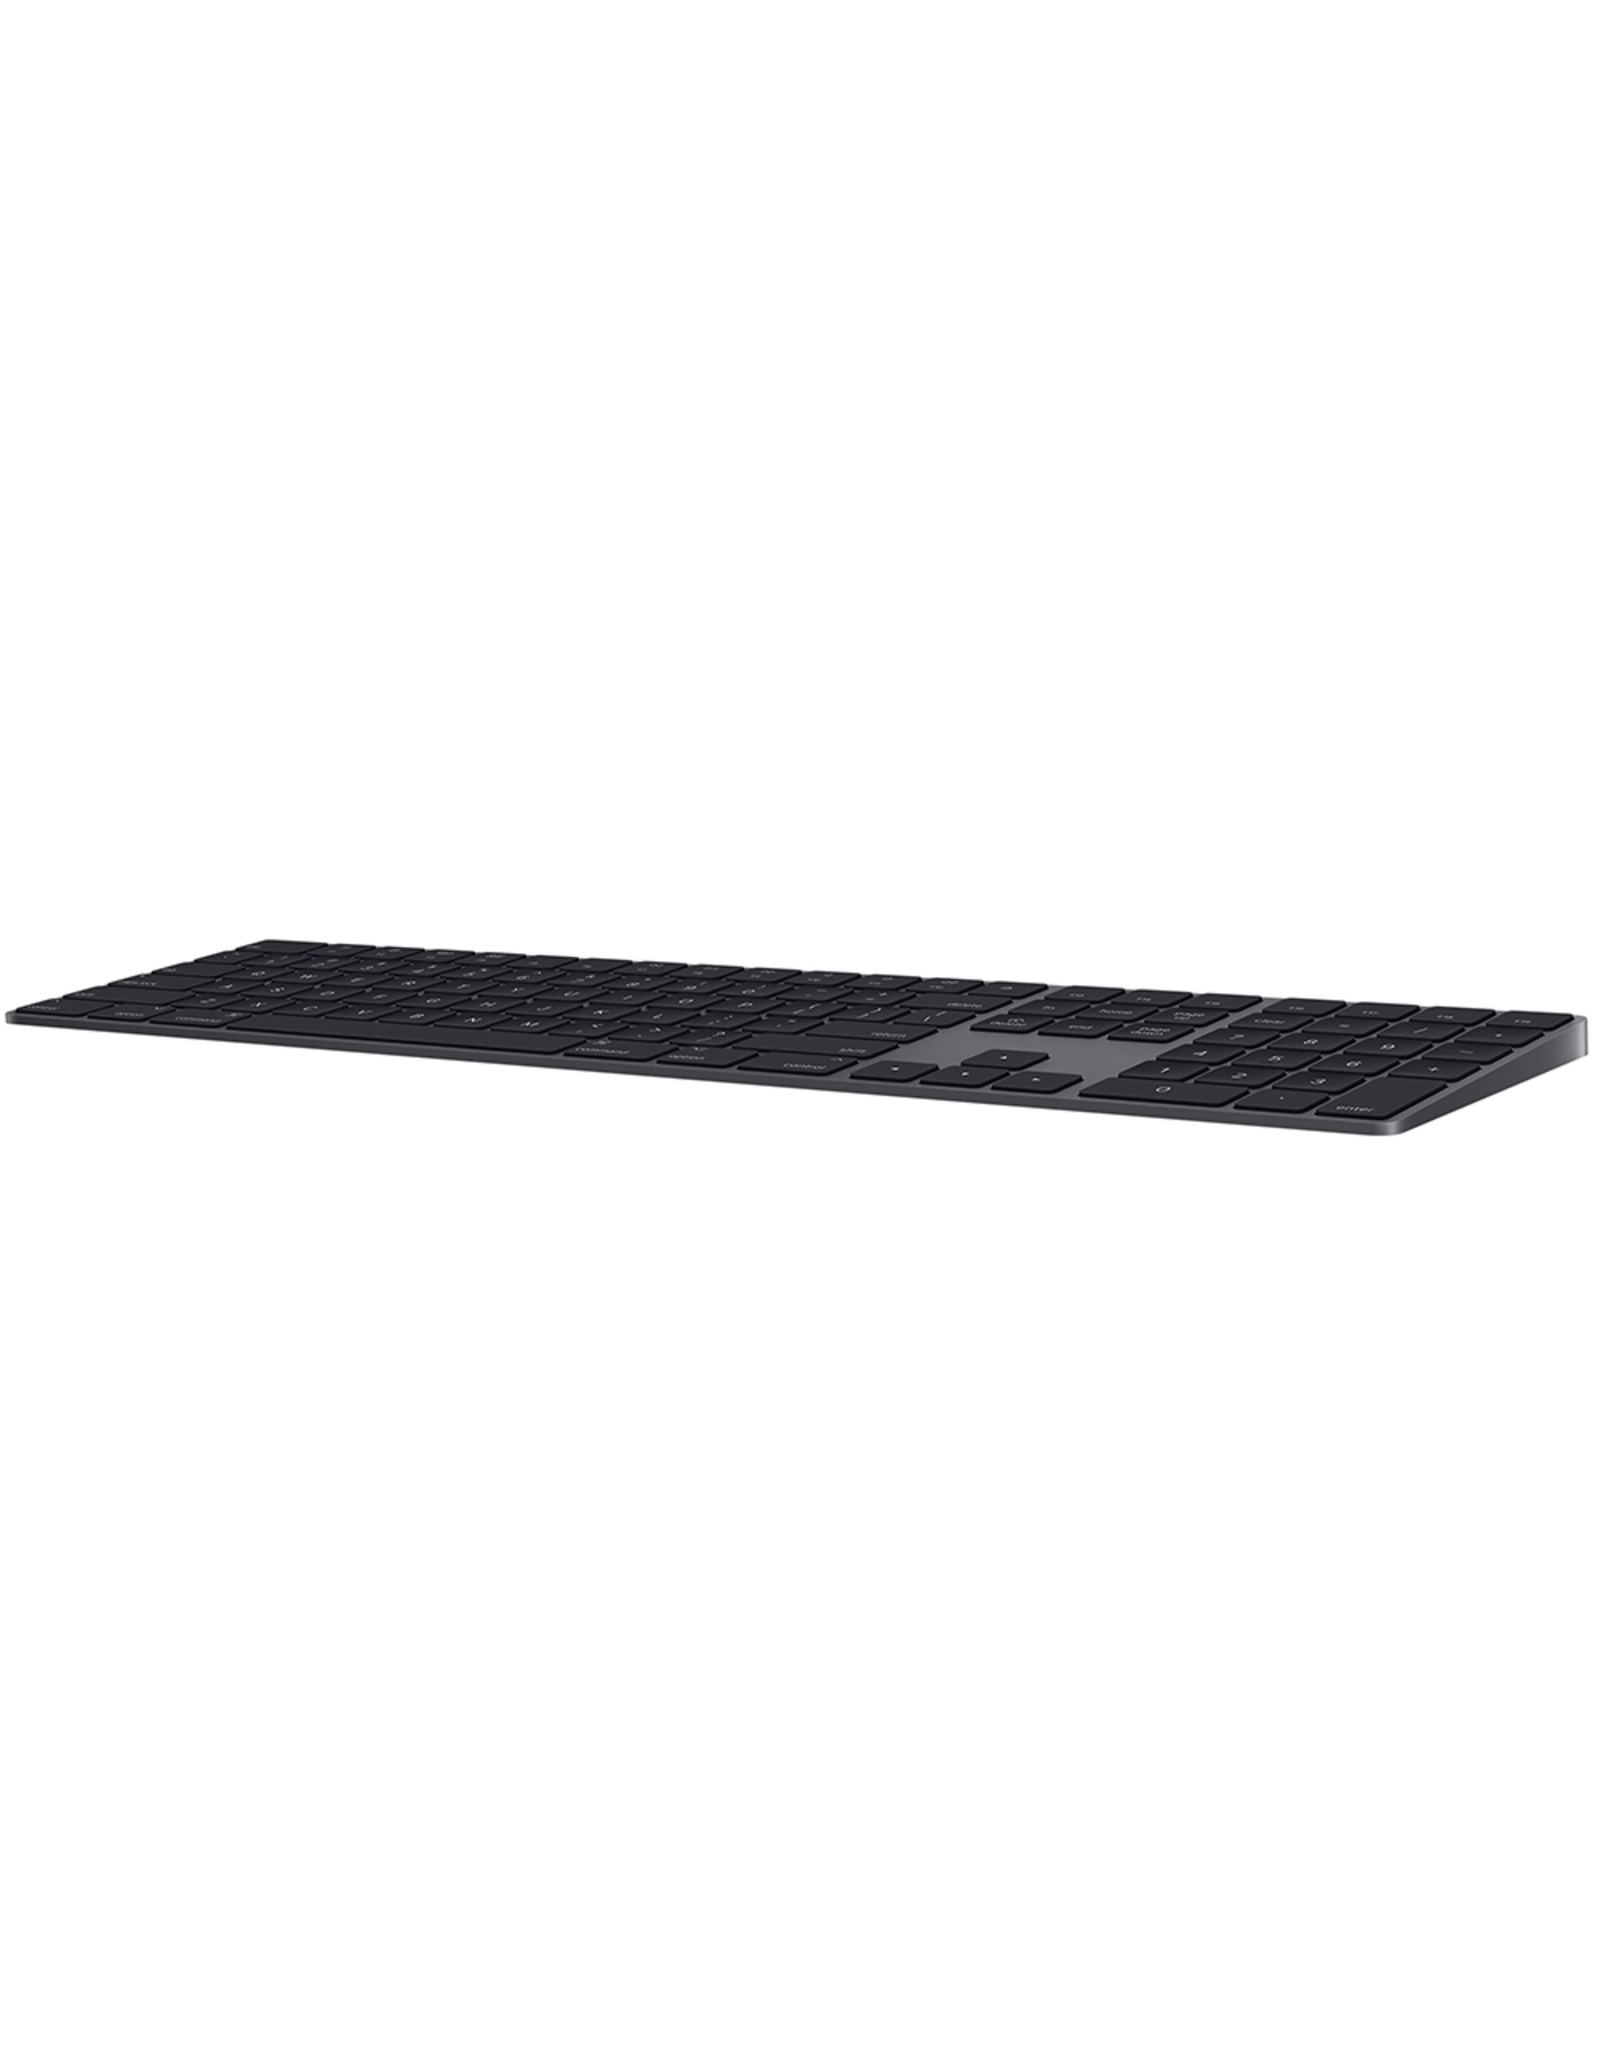 Apple Apple Magic Keyboard with Numeric Keypad - Space Grey